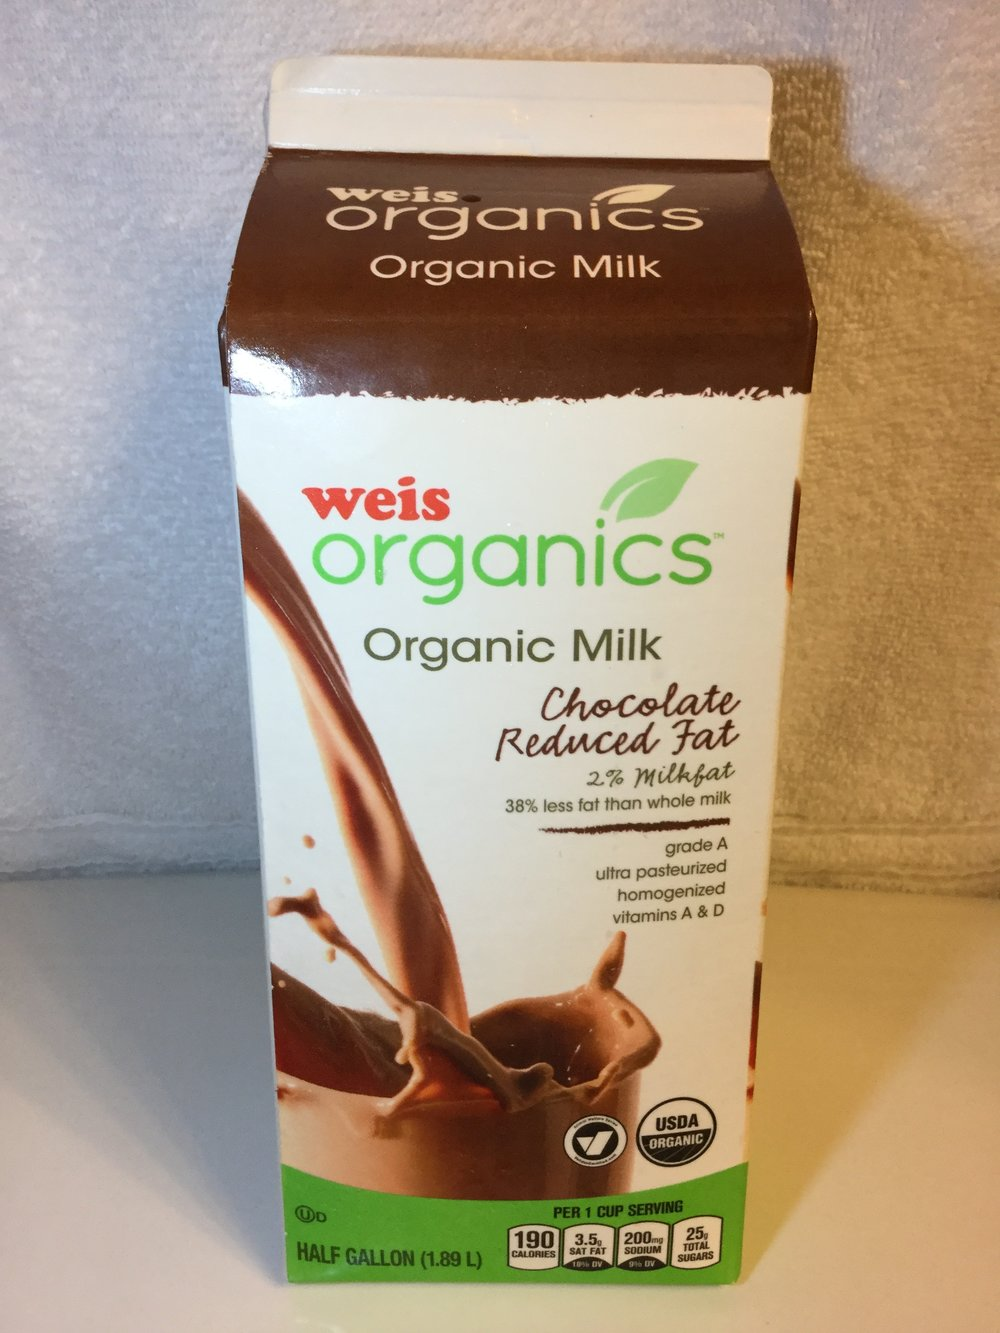 Weis Organics Reduced Fat Chocolate Milk Side 2